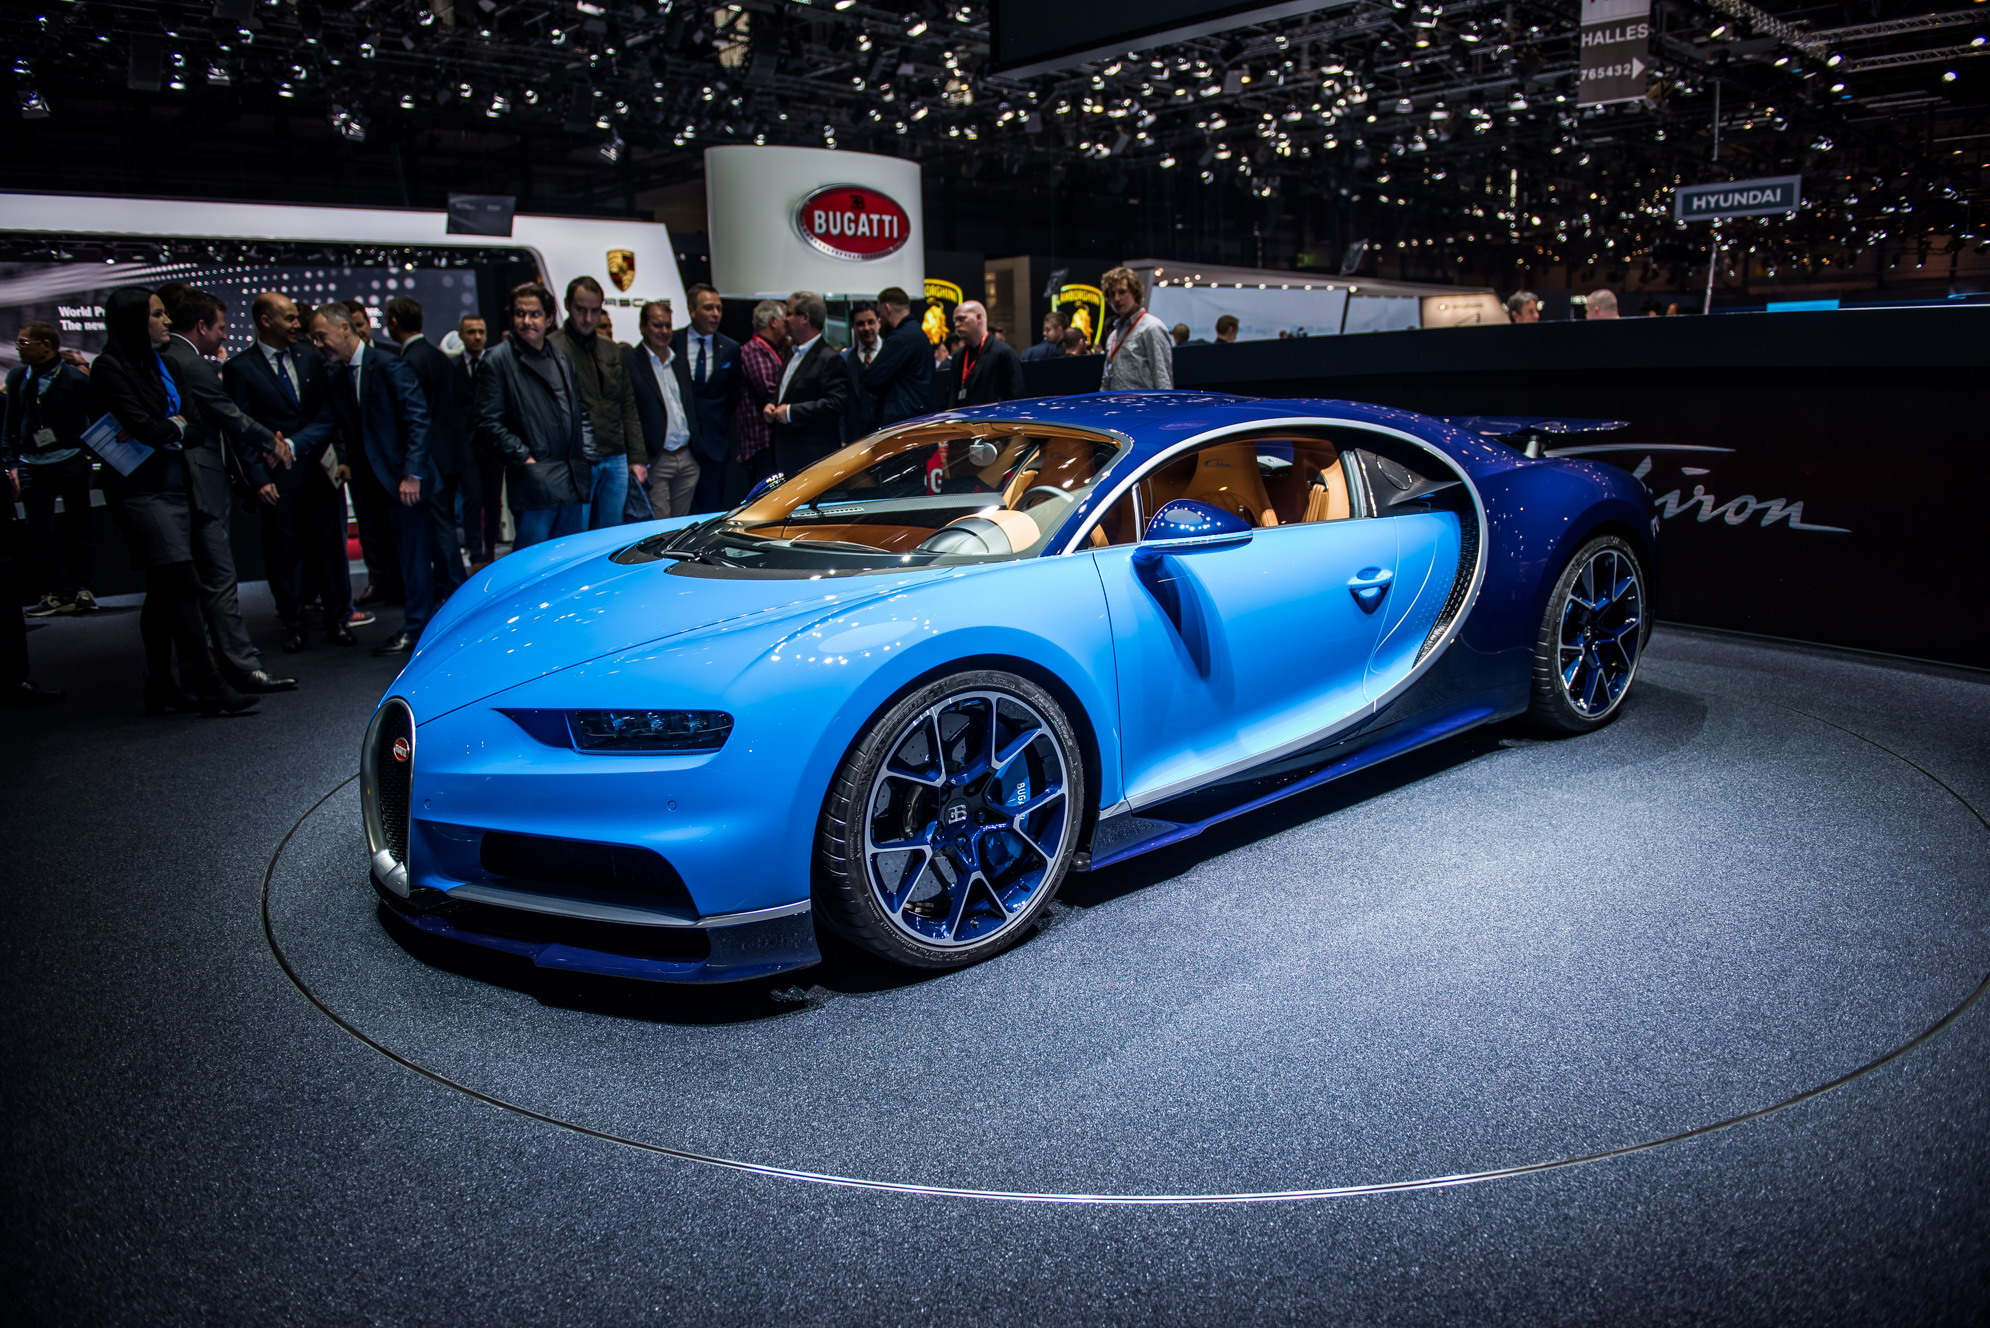 2018 Bugatti Chiron Review - Top Speed